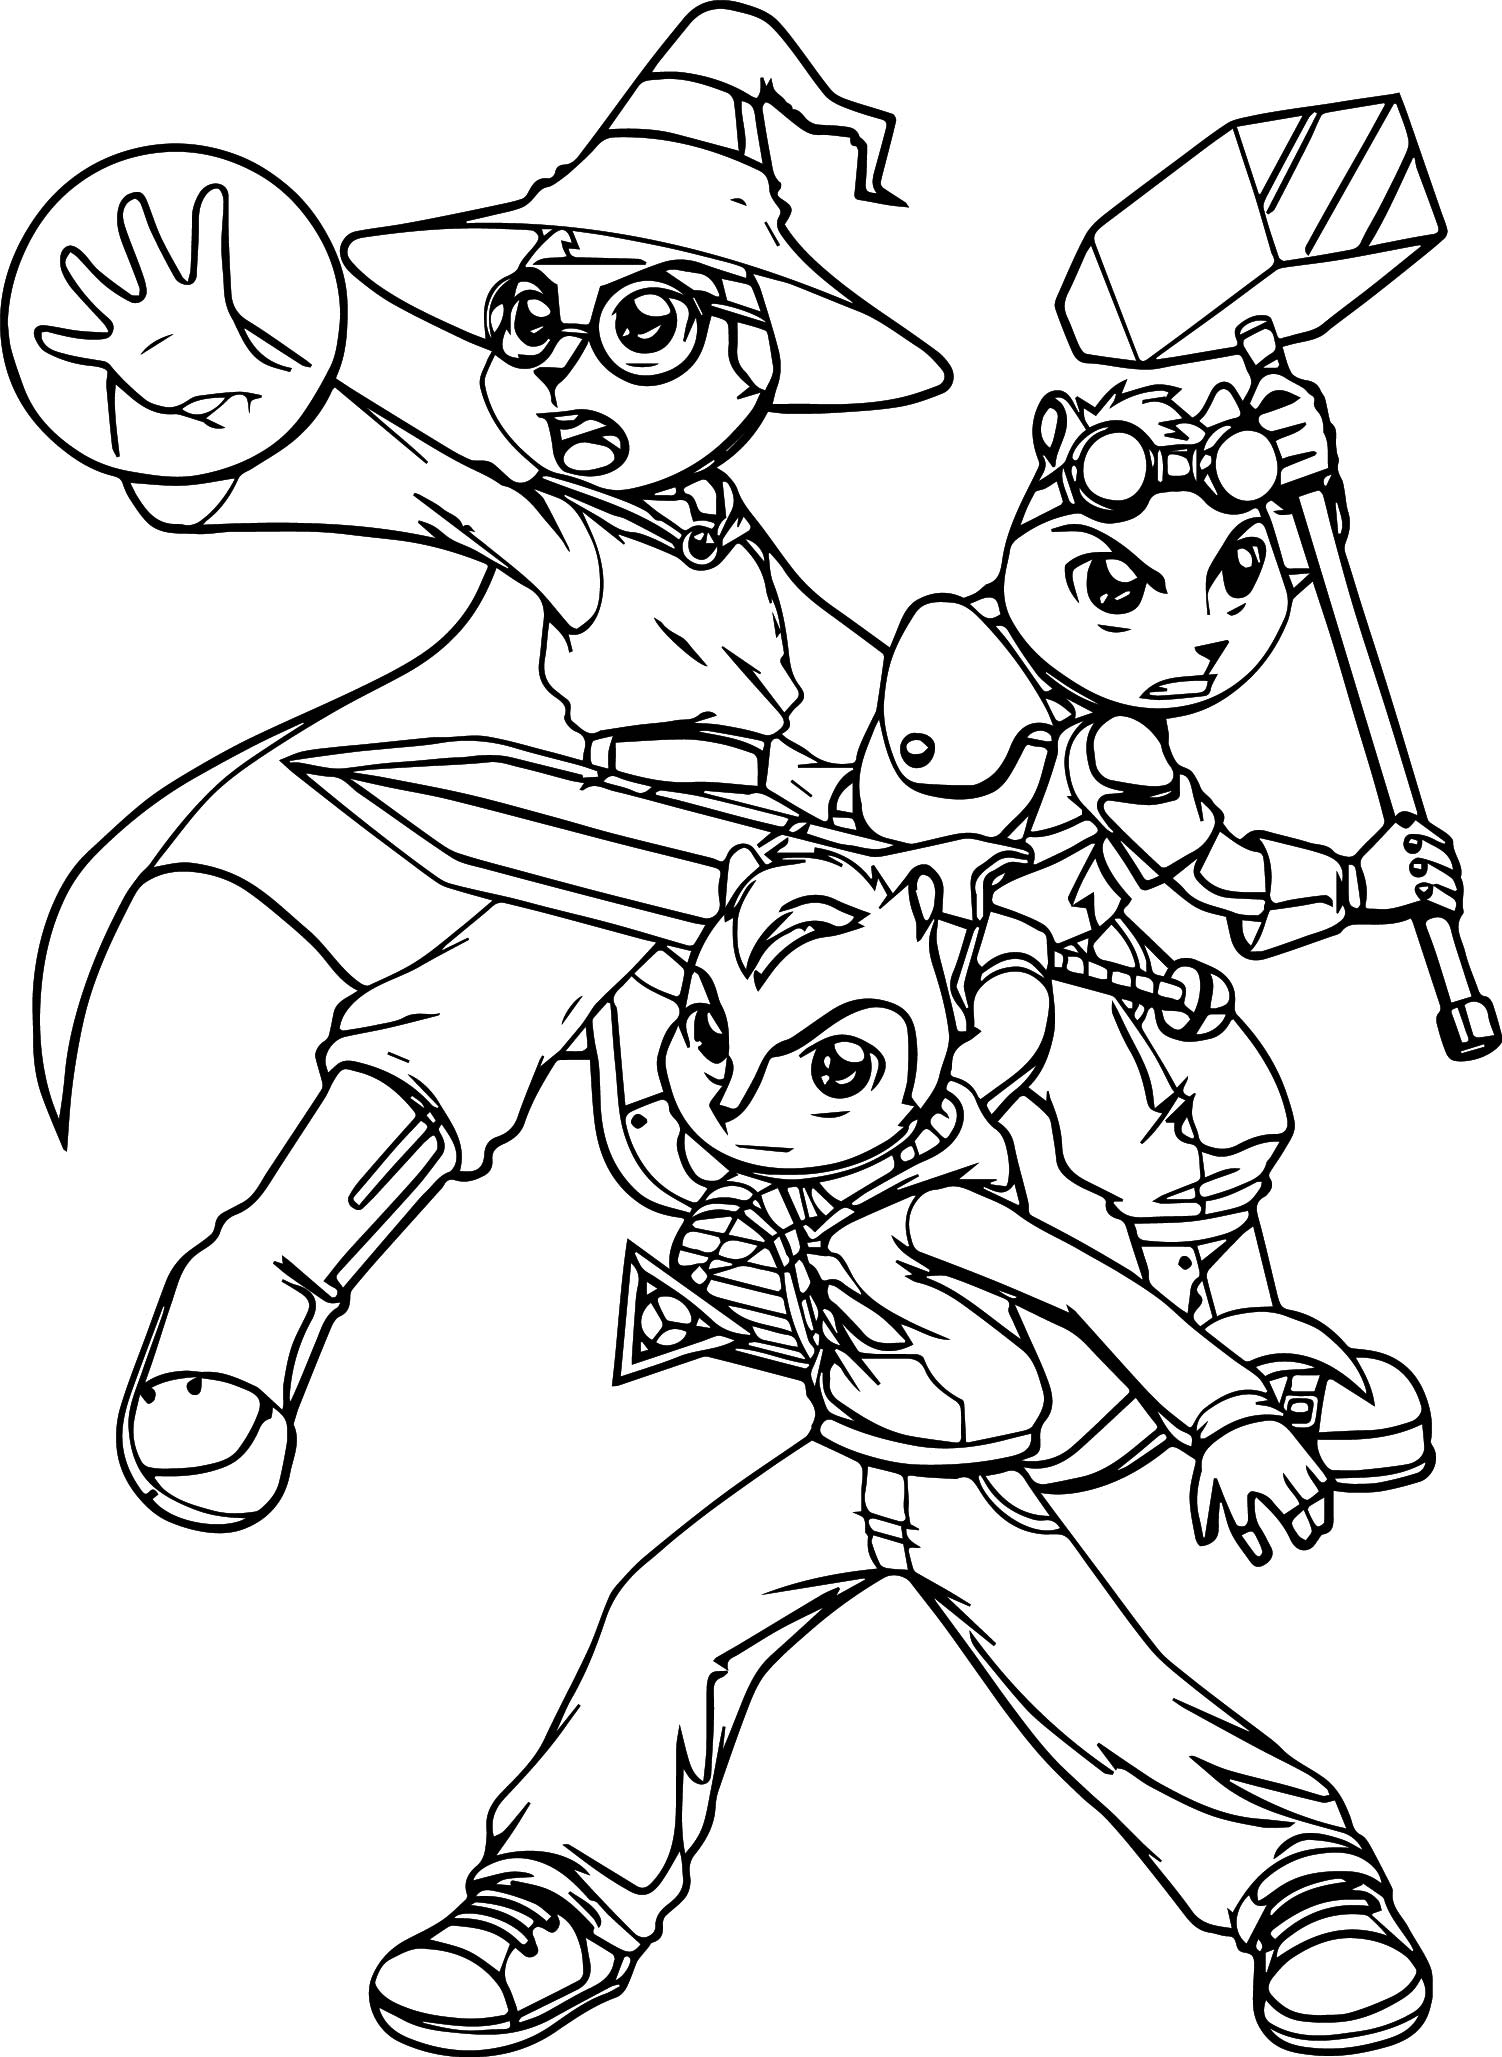 Alvin and the chipmunks trinity force coloring page for Alvin coloring pages